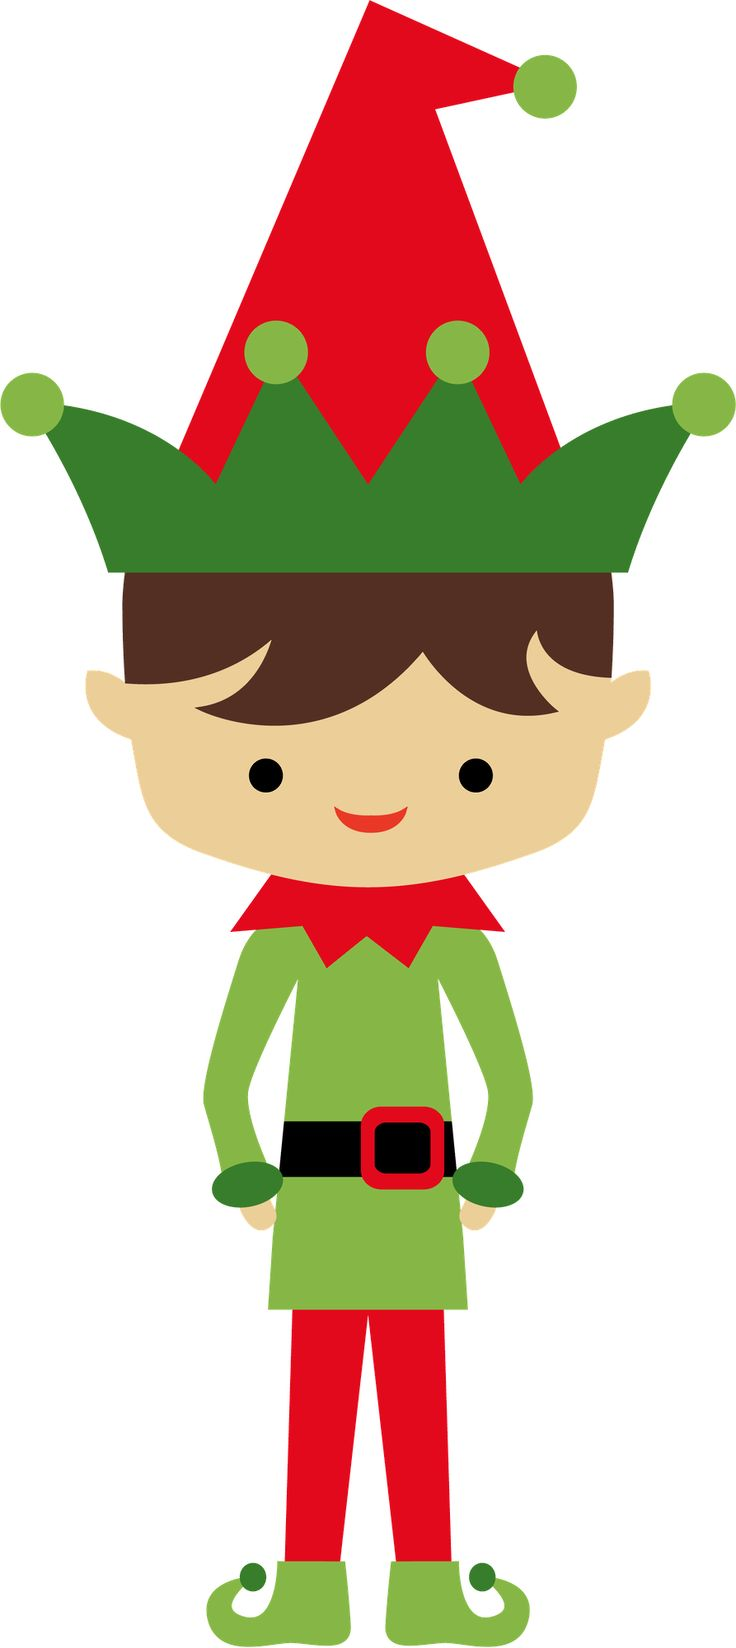 Elf Clipart | Free download best Elf Clipart on ClipArtMag.com